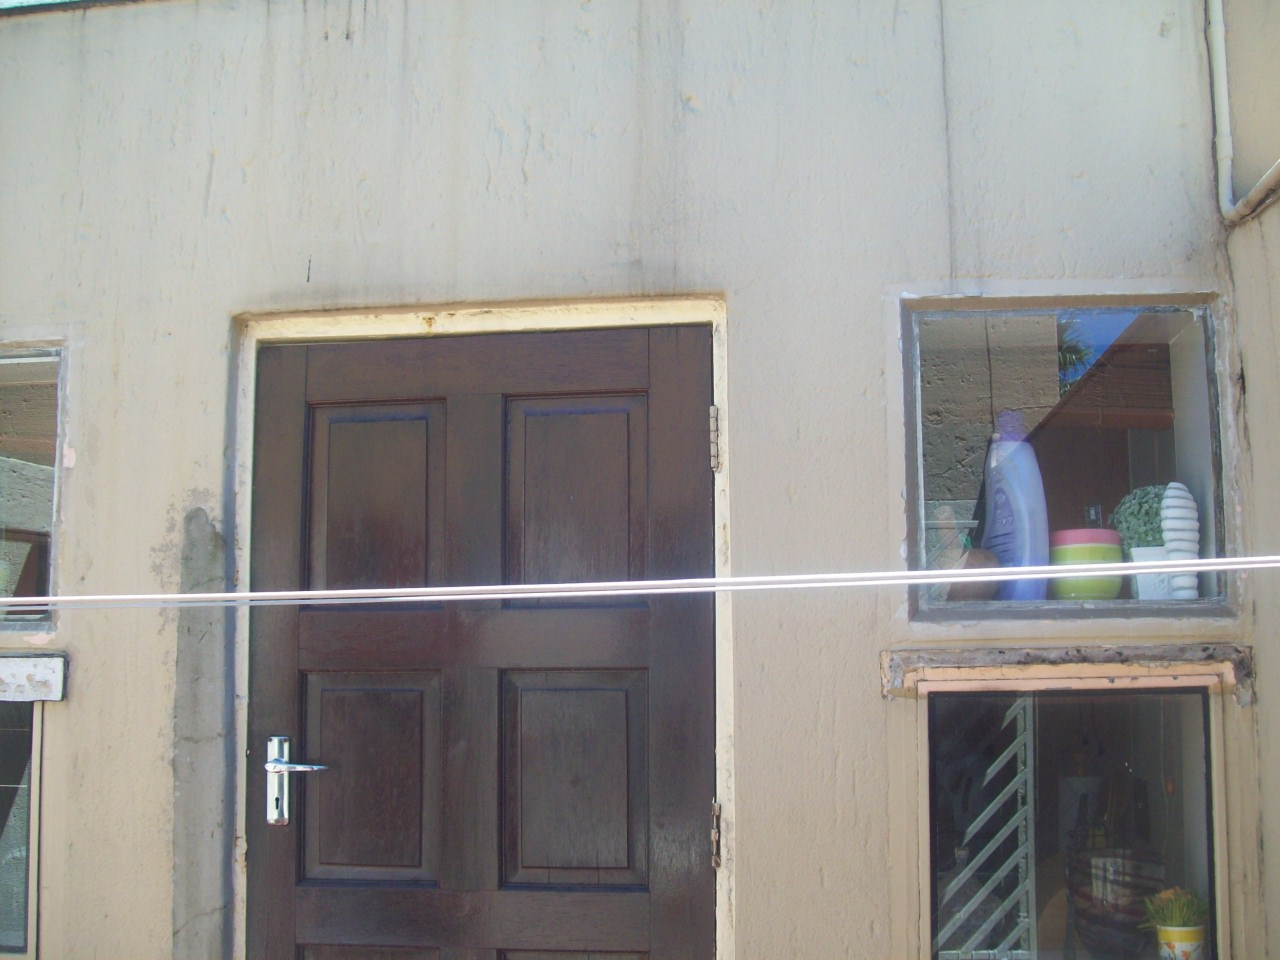 3 Bedroom Townhouse for sale in Bassonia ENT0071278 : photo#61